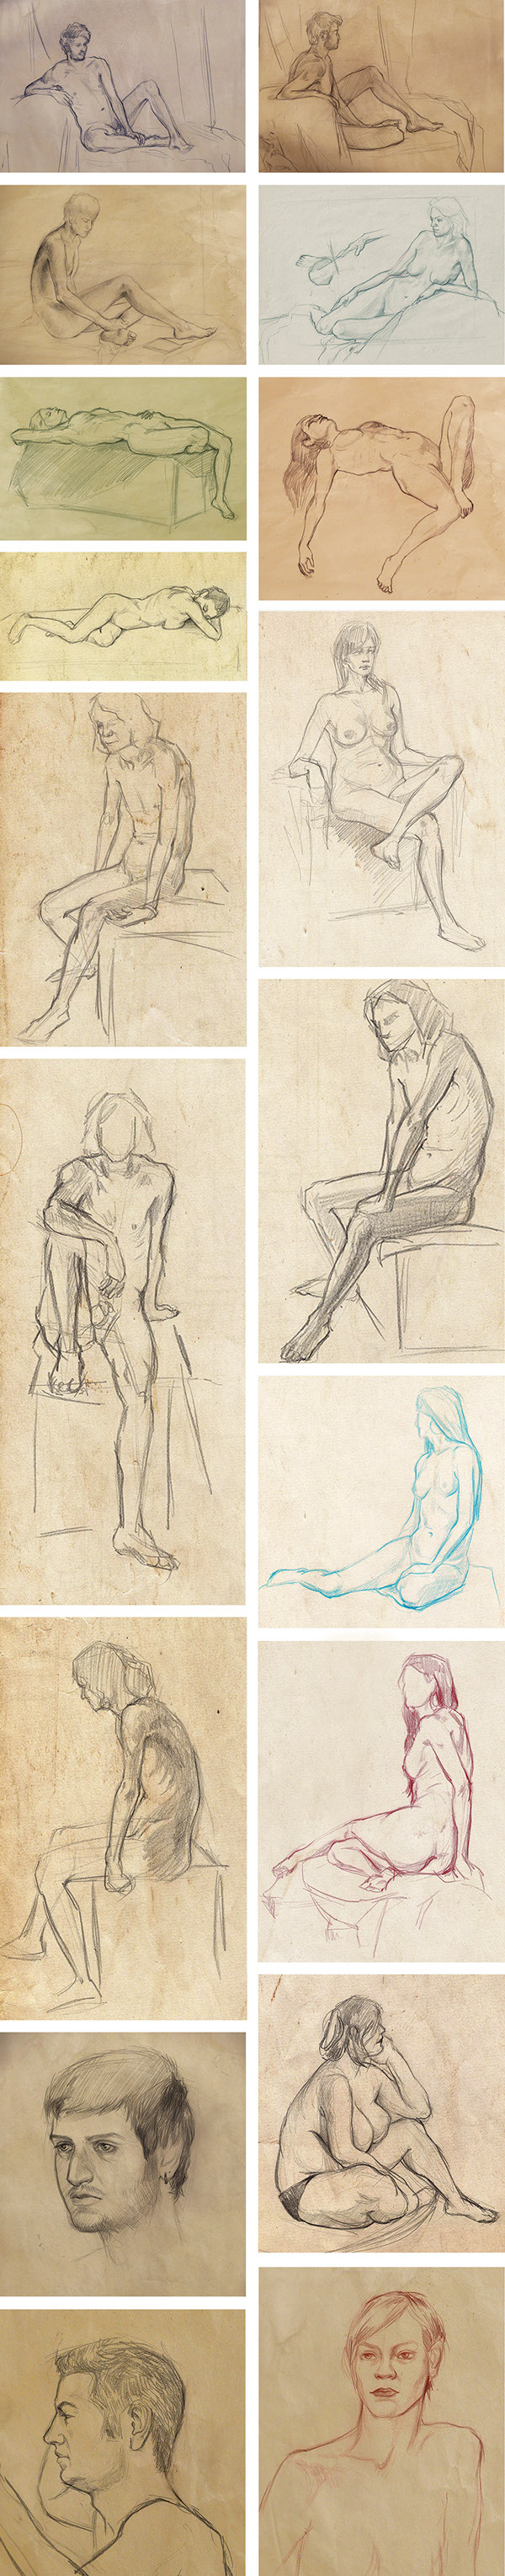 Nude sketches